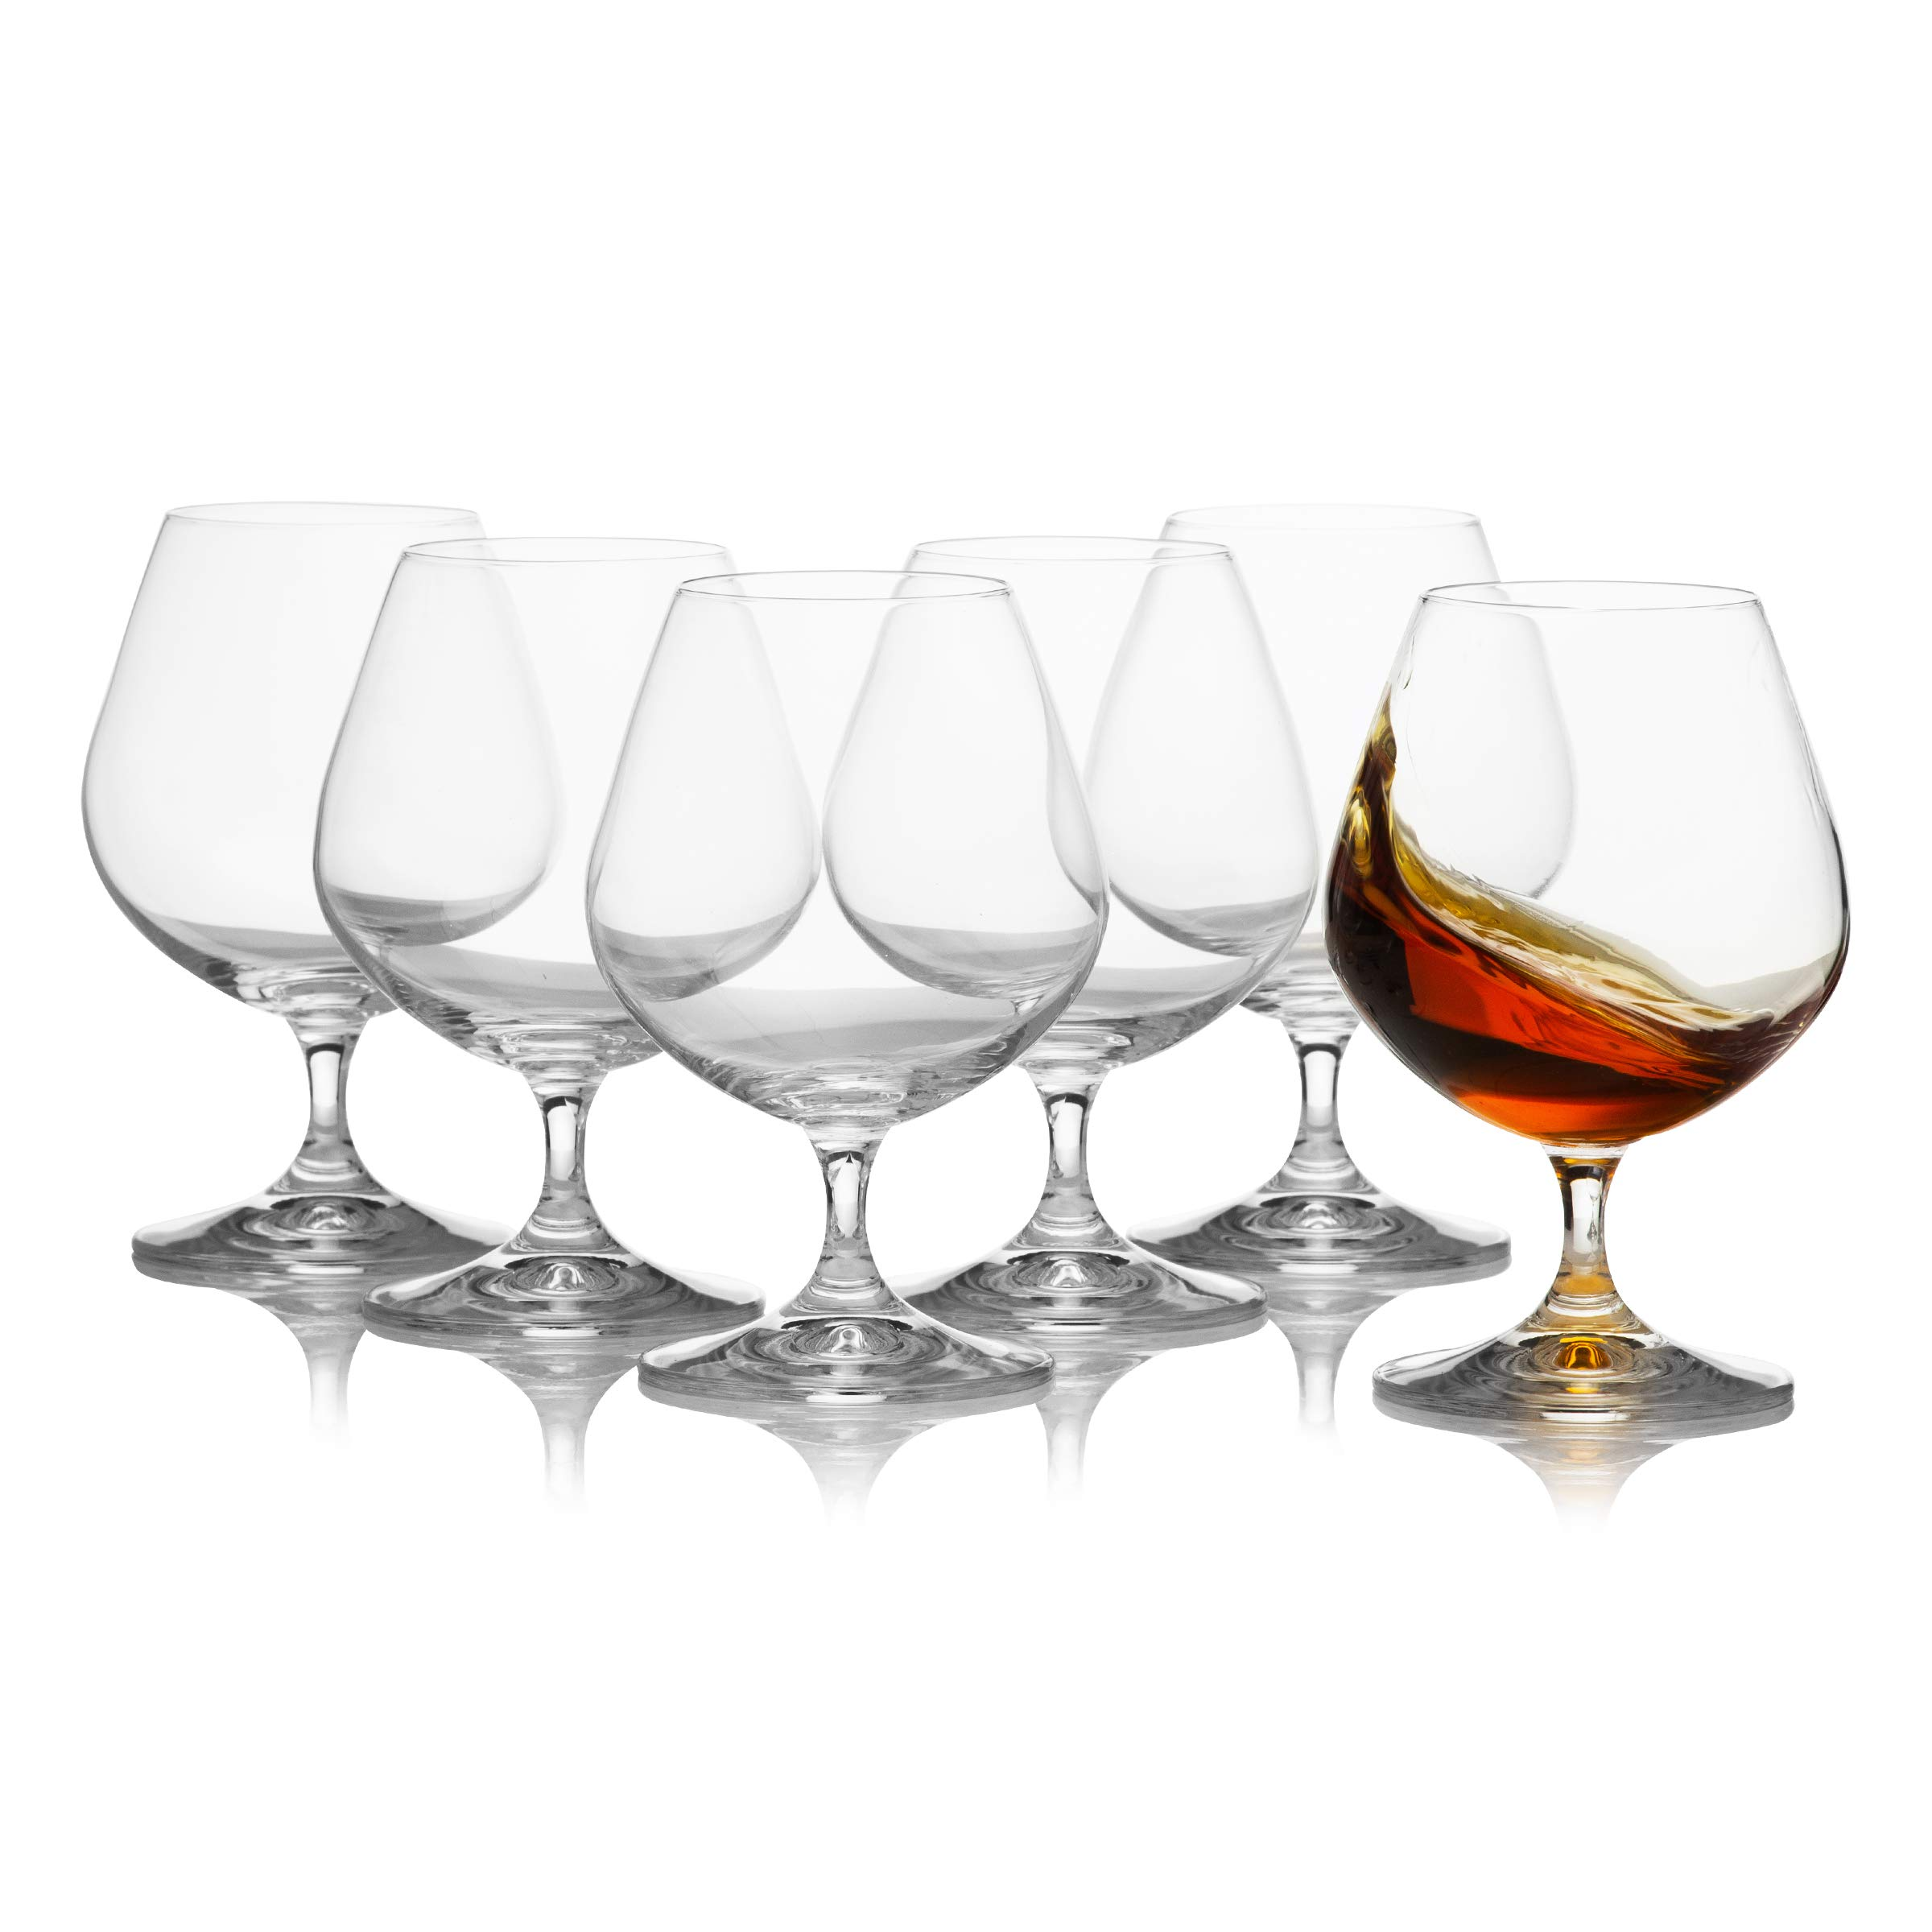 Crystal Brandy and Cognac Snifter Glasses Set of 6 / Elegant and Durable Bohemian Glass  /  13.5 Ounces / 400 Milliliters